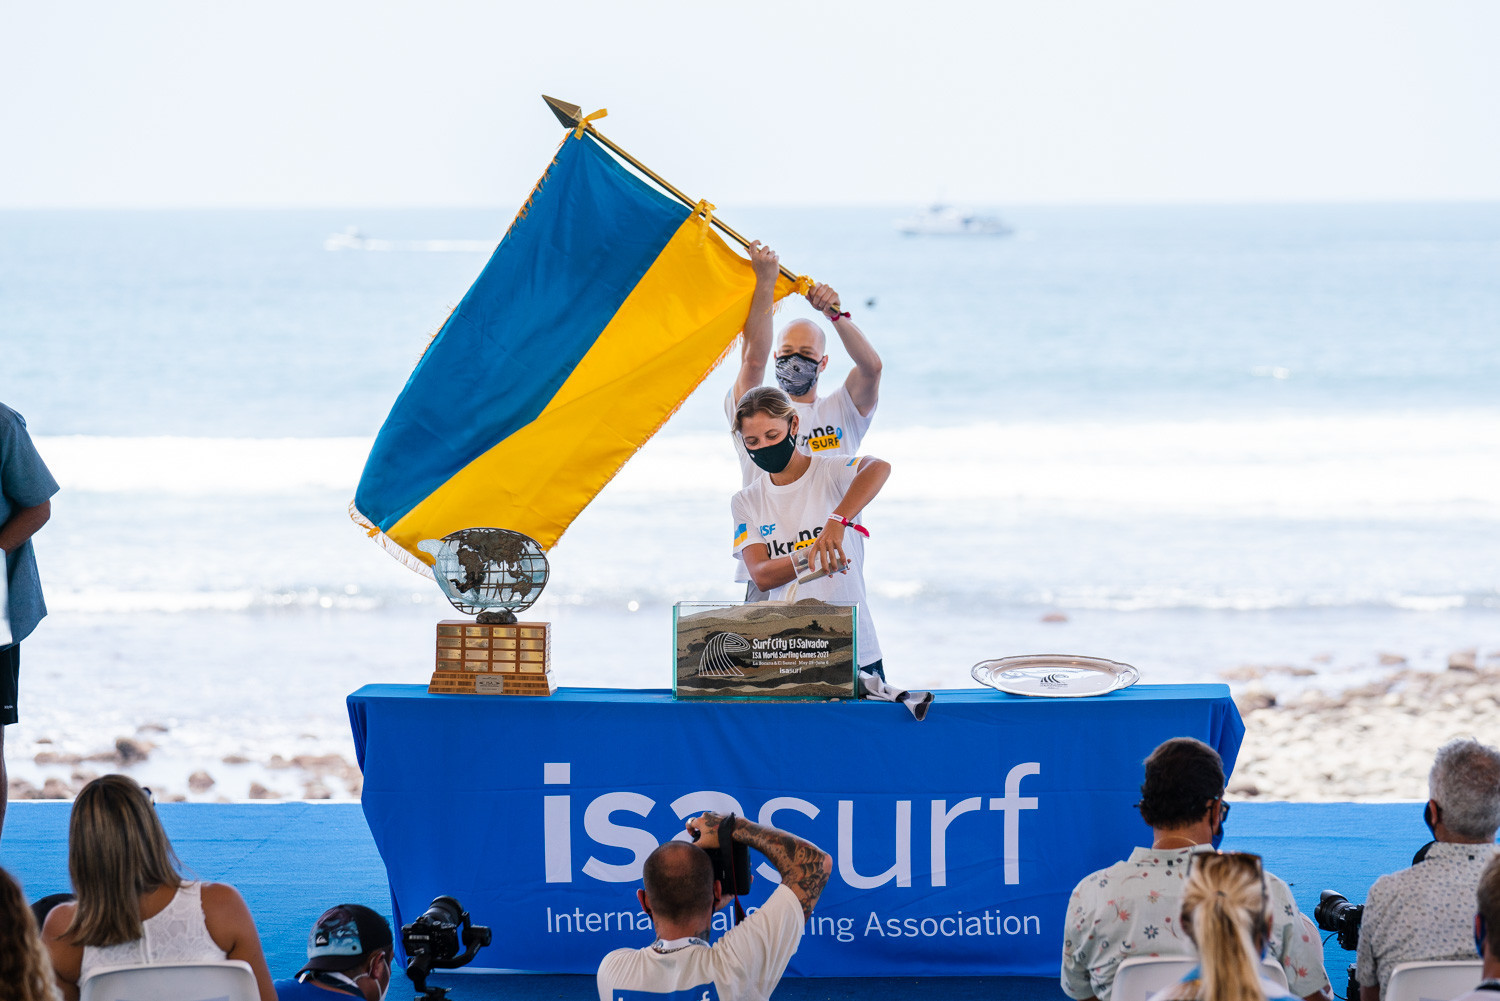 Ukraine has been represented at the World Surfing Games for the first time ©ISA/Pablo Jimenez